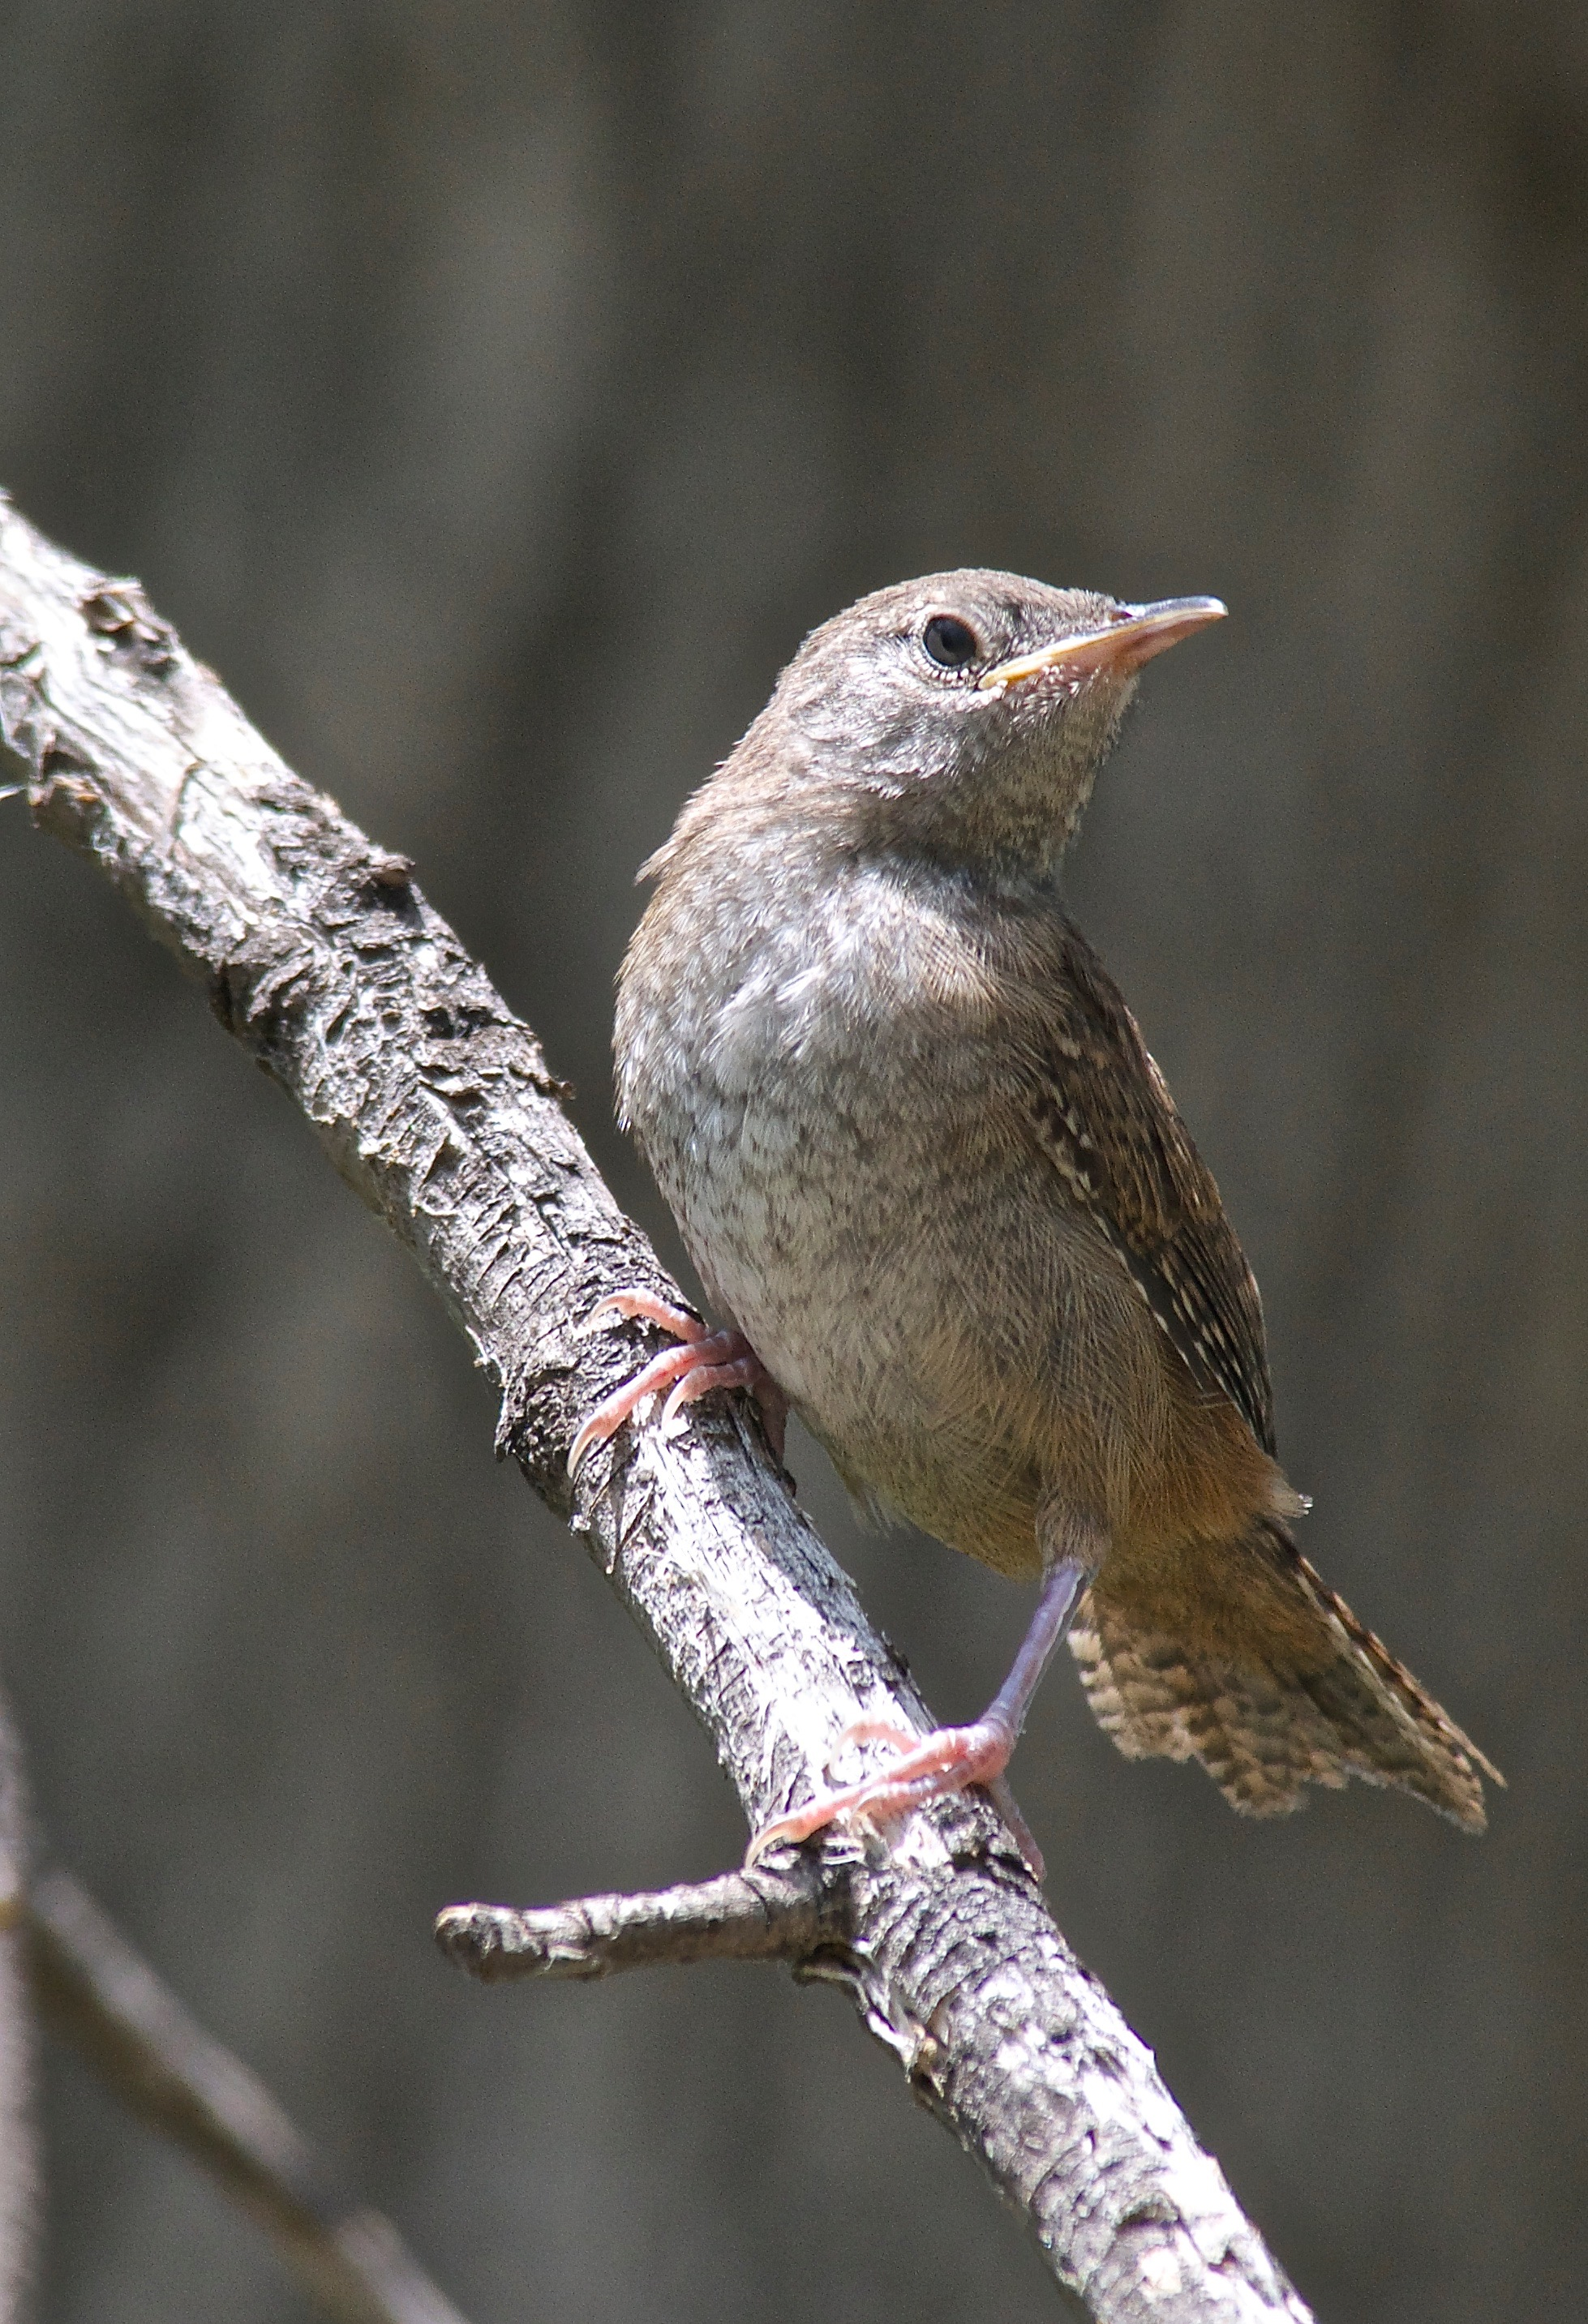 Young House Wren